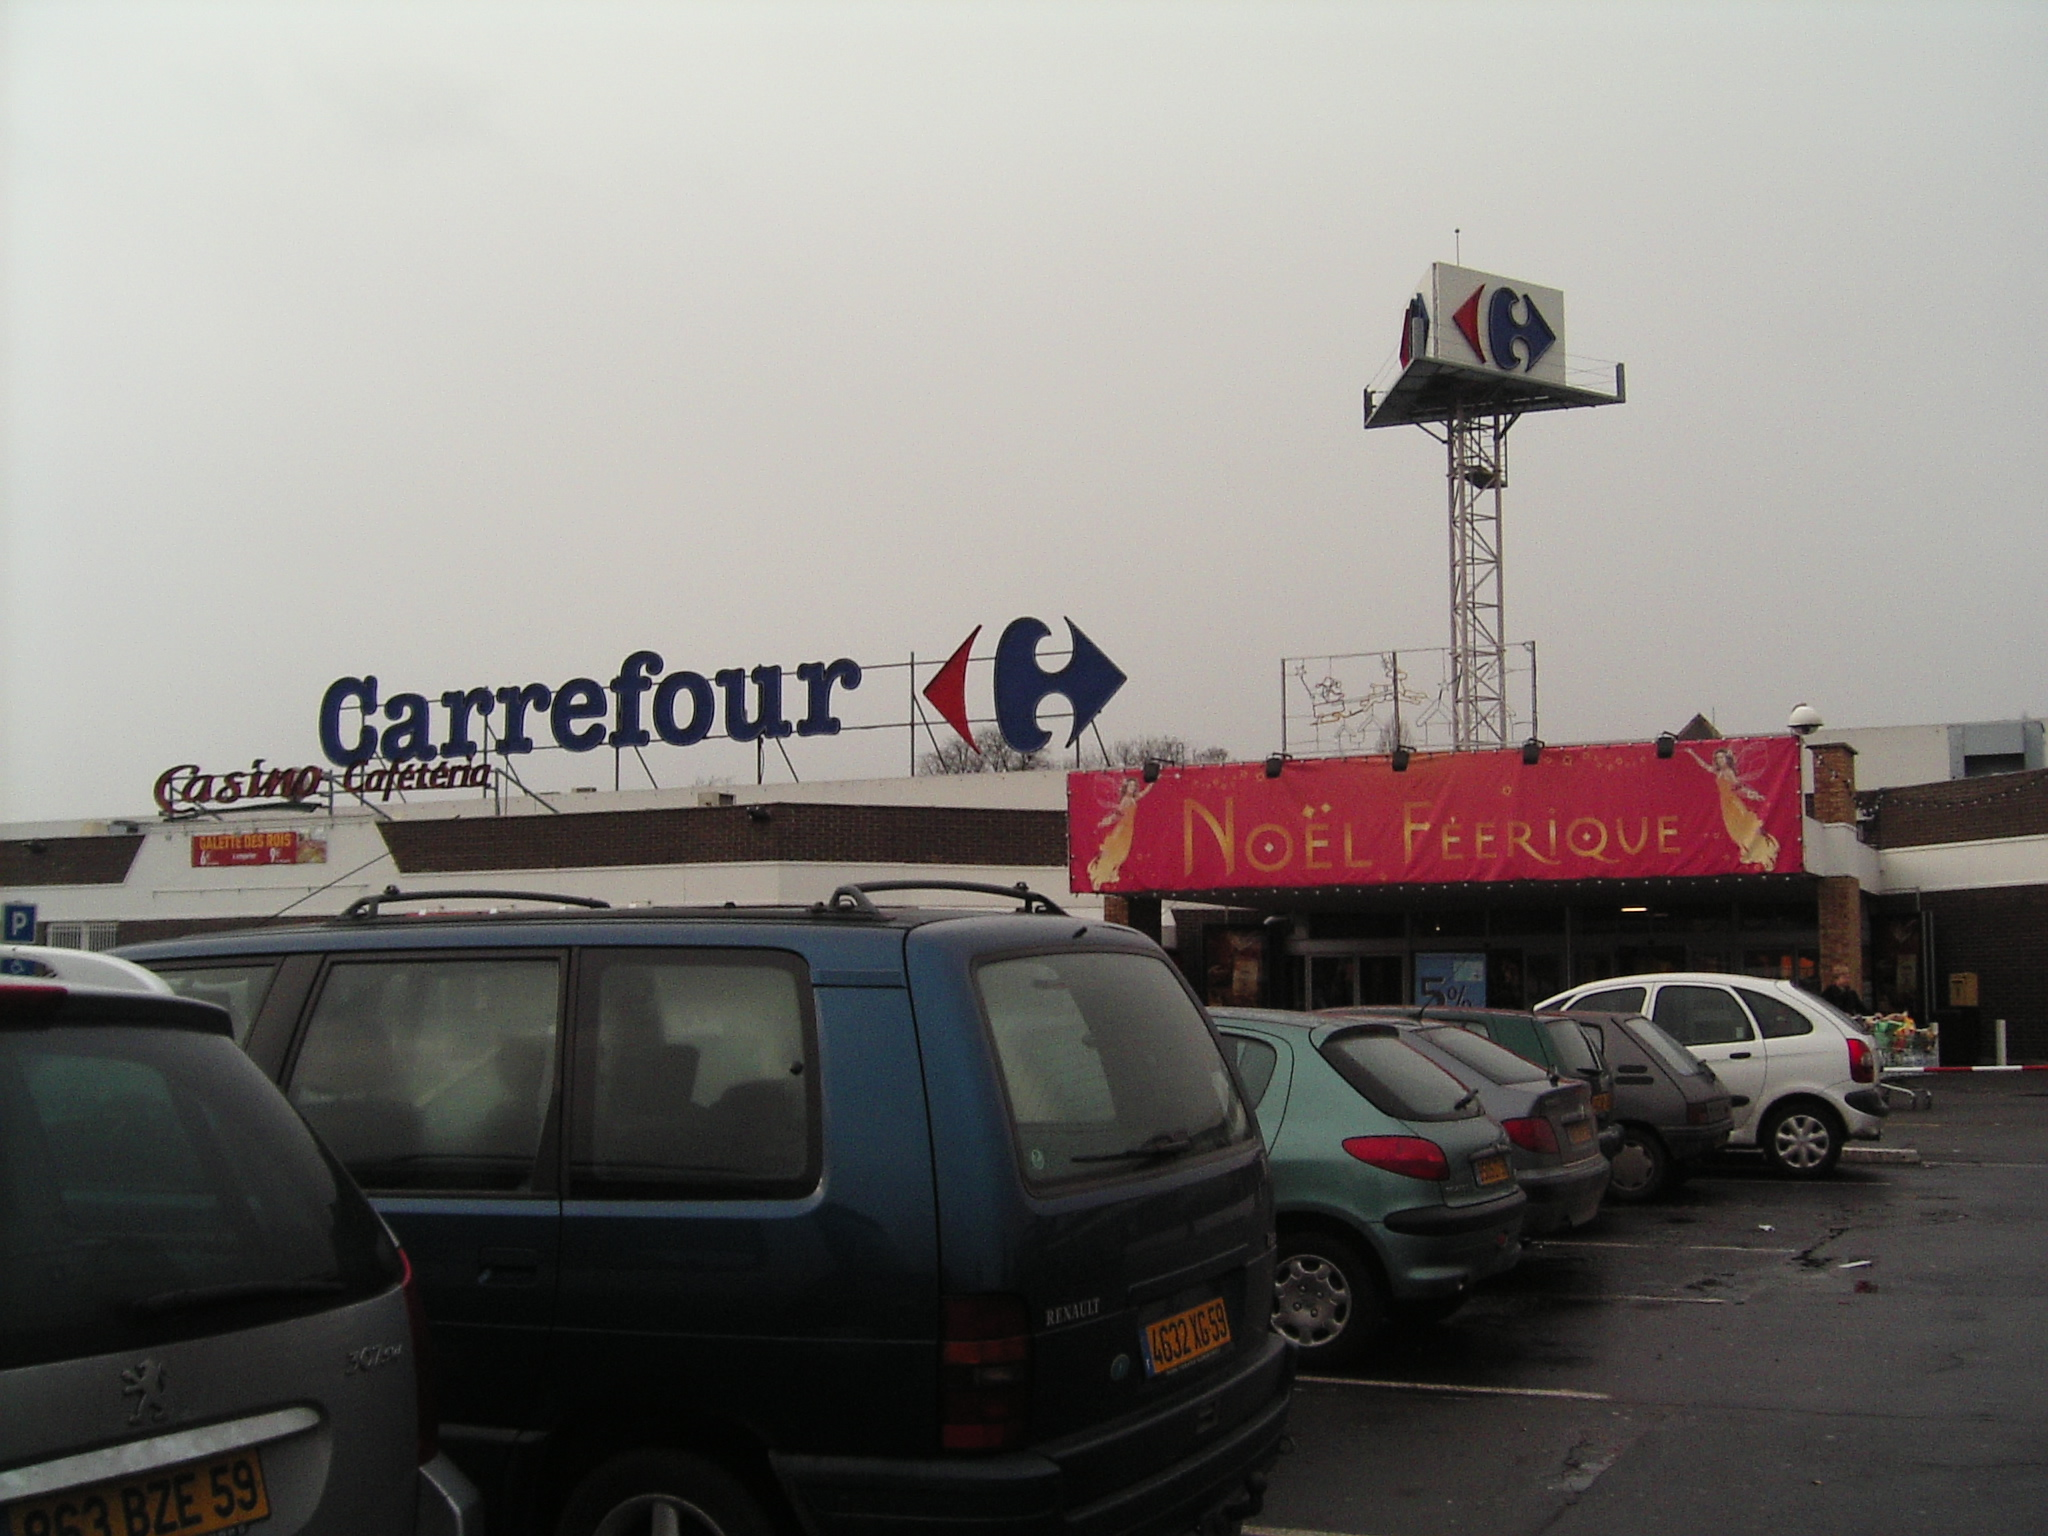 Retailers in France, hypermarket Carrefour